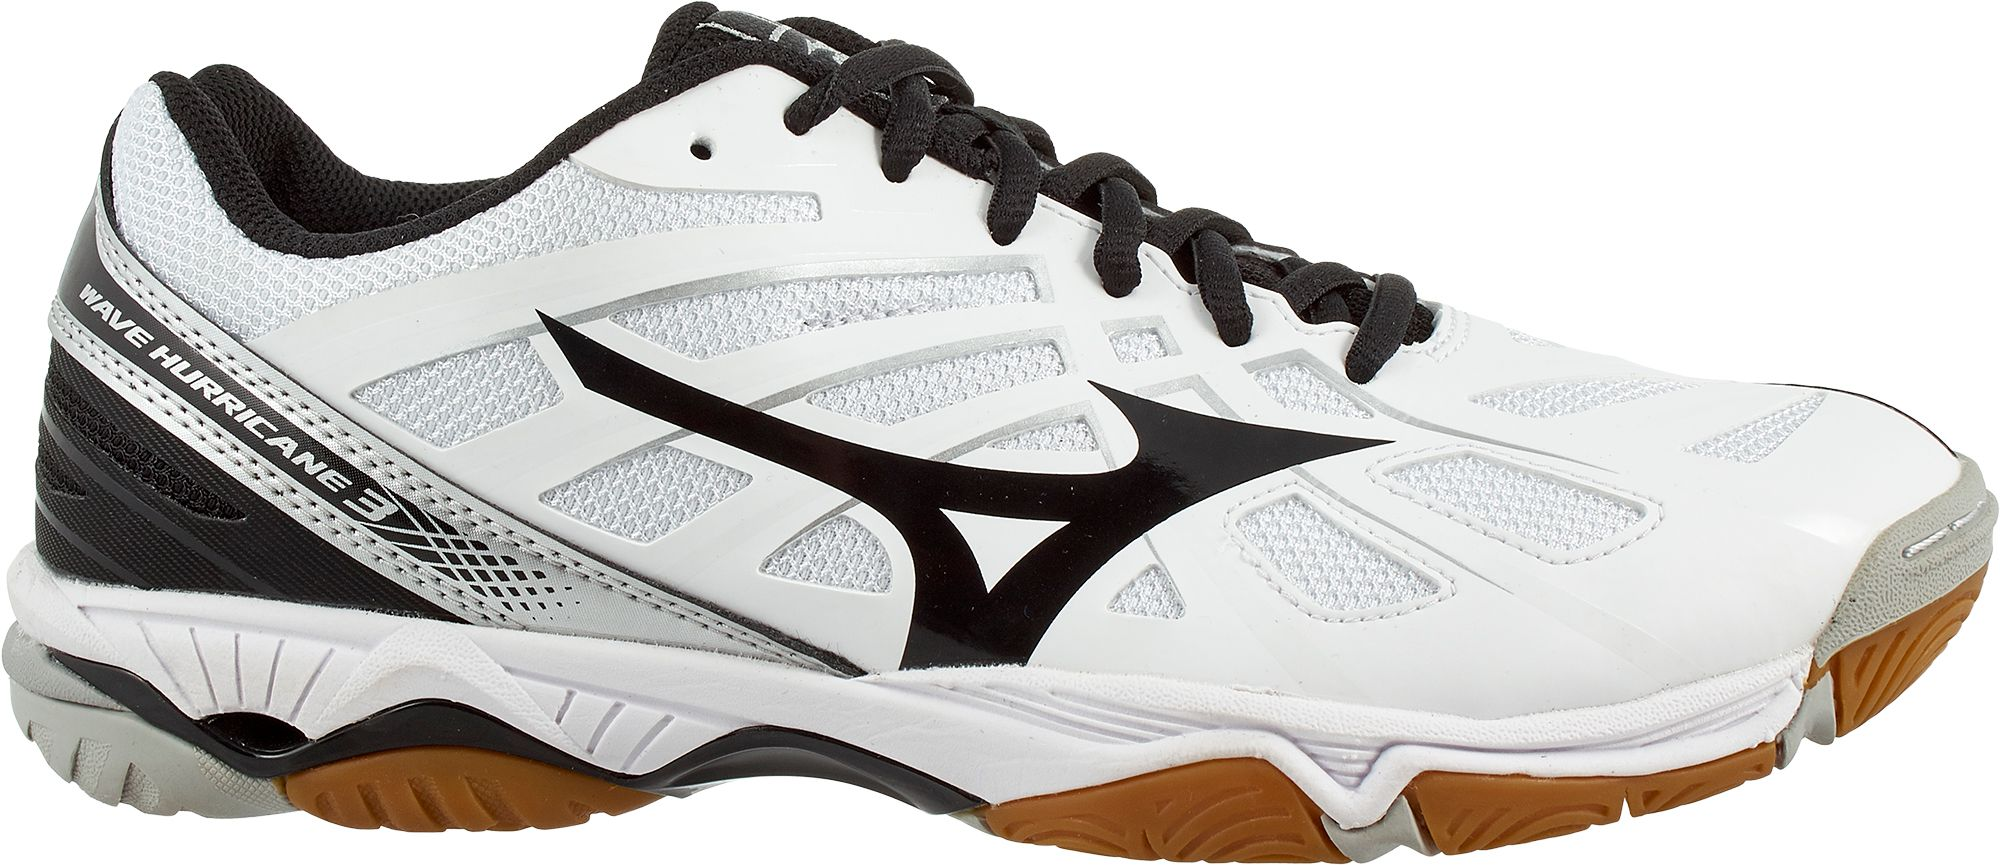 mizuno womens volleyball shoes size 8 x 1 jacket on one